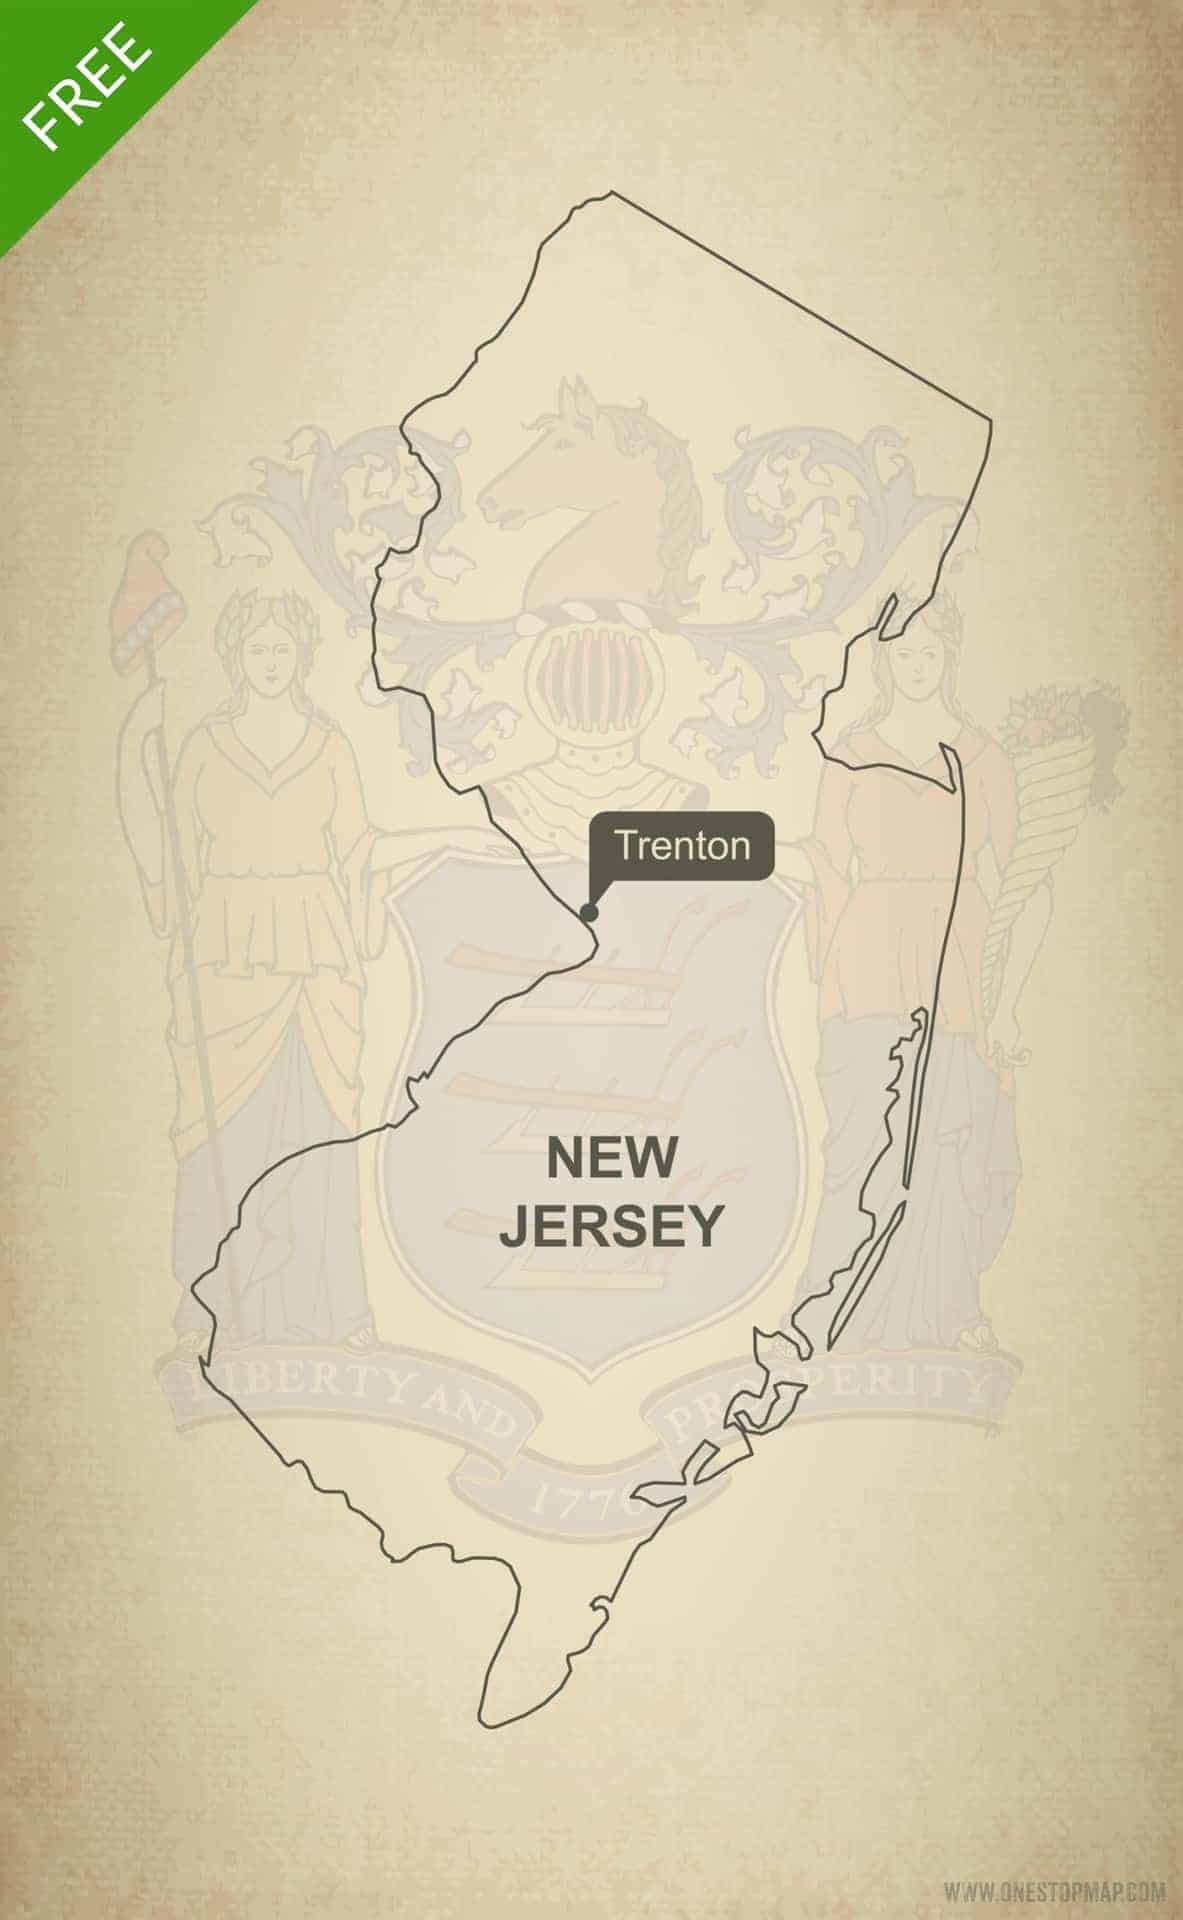 Free vector map of New Jersey outline | One Stop Map